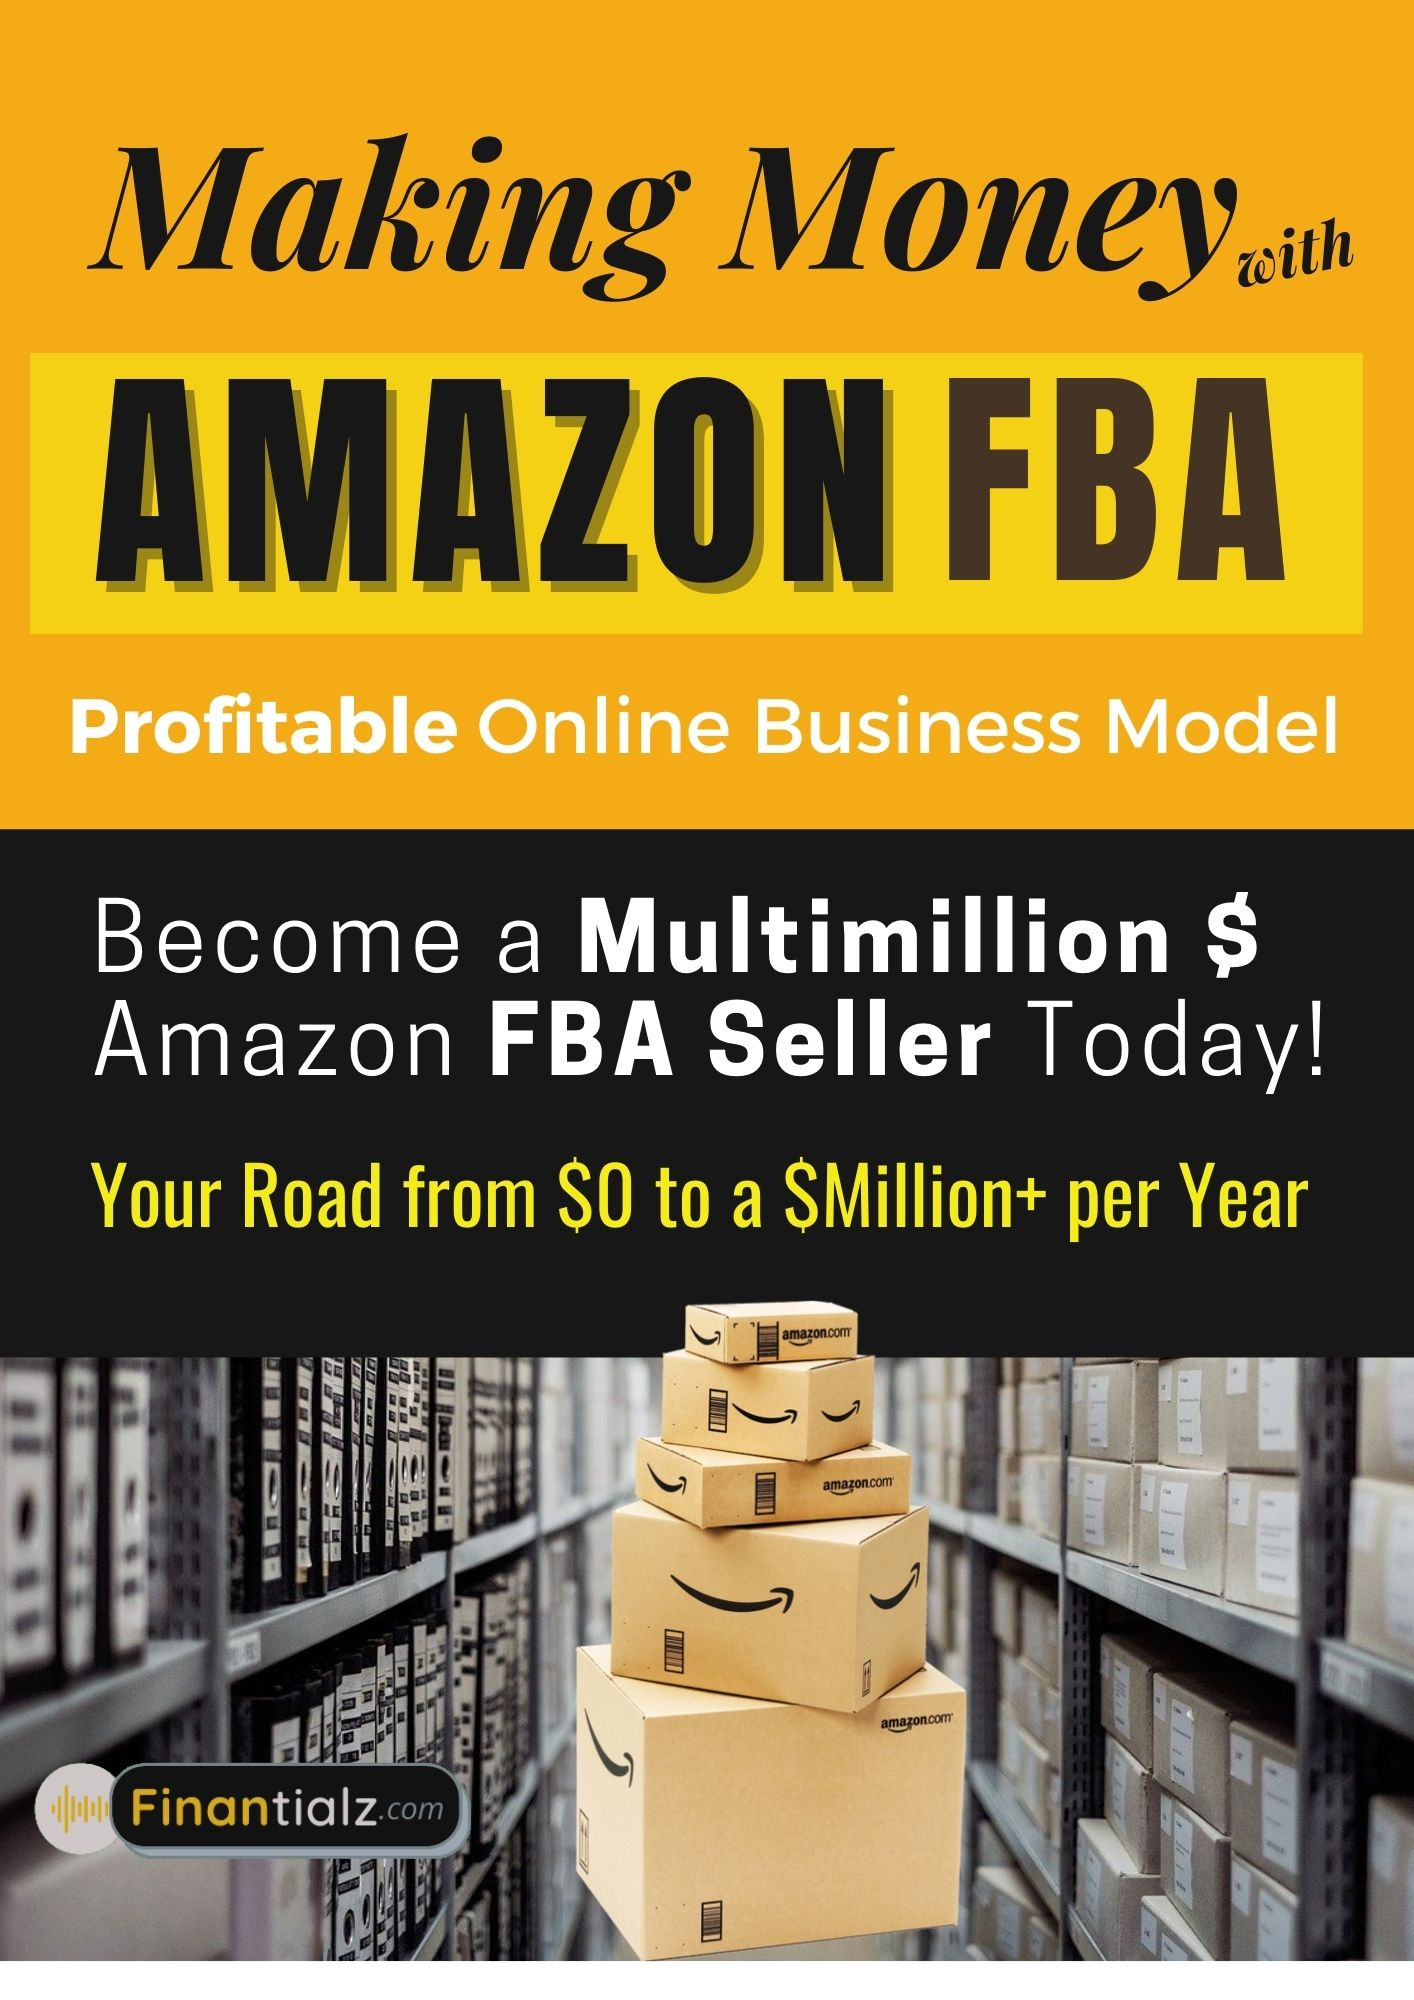 Make Money Online from home with Amazon FBA